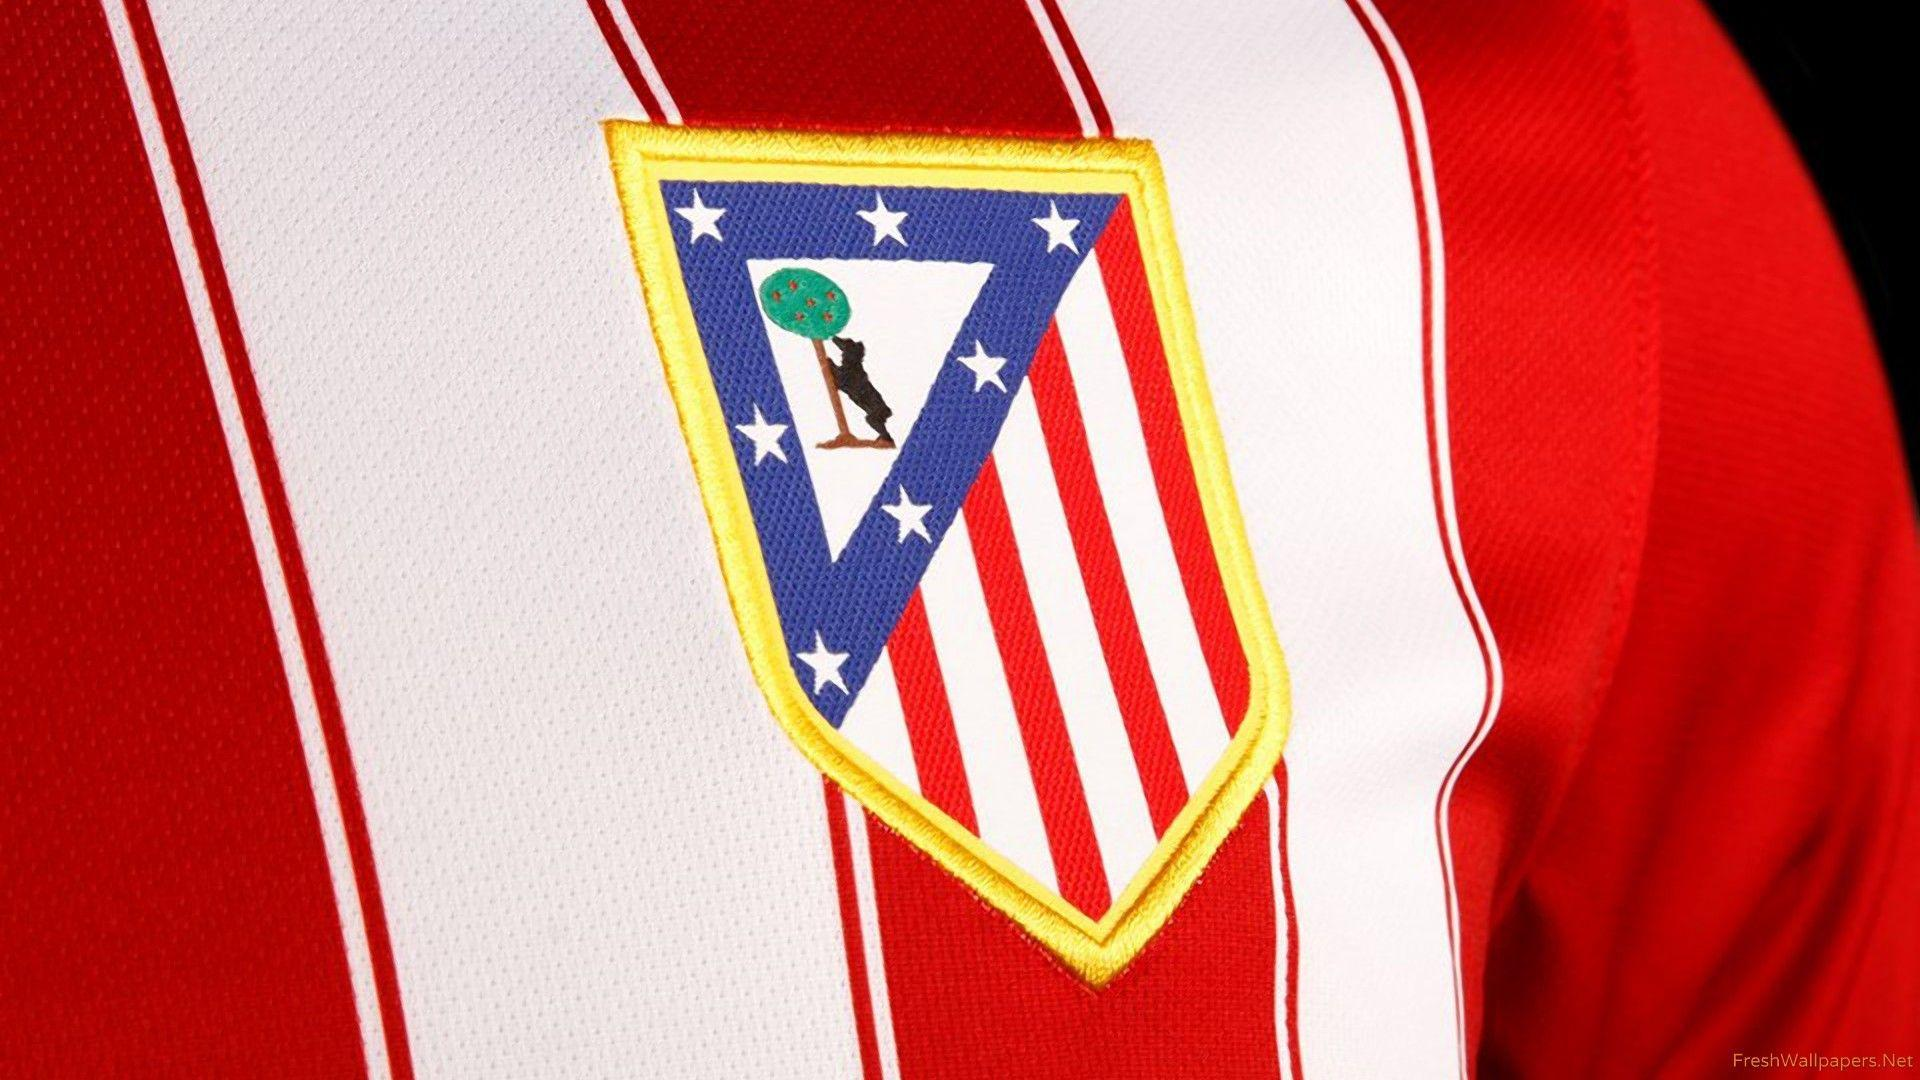 Atletico Madrid 2015-16 Nike Home Jersey Badge wallpapers ...